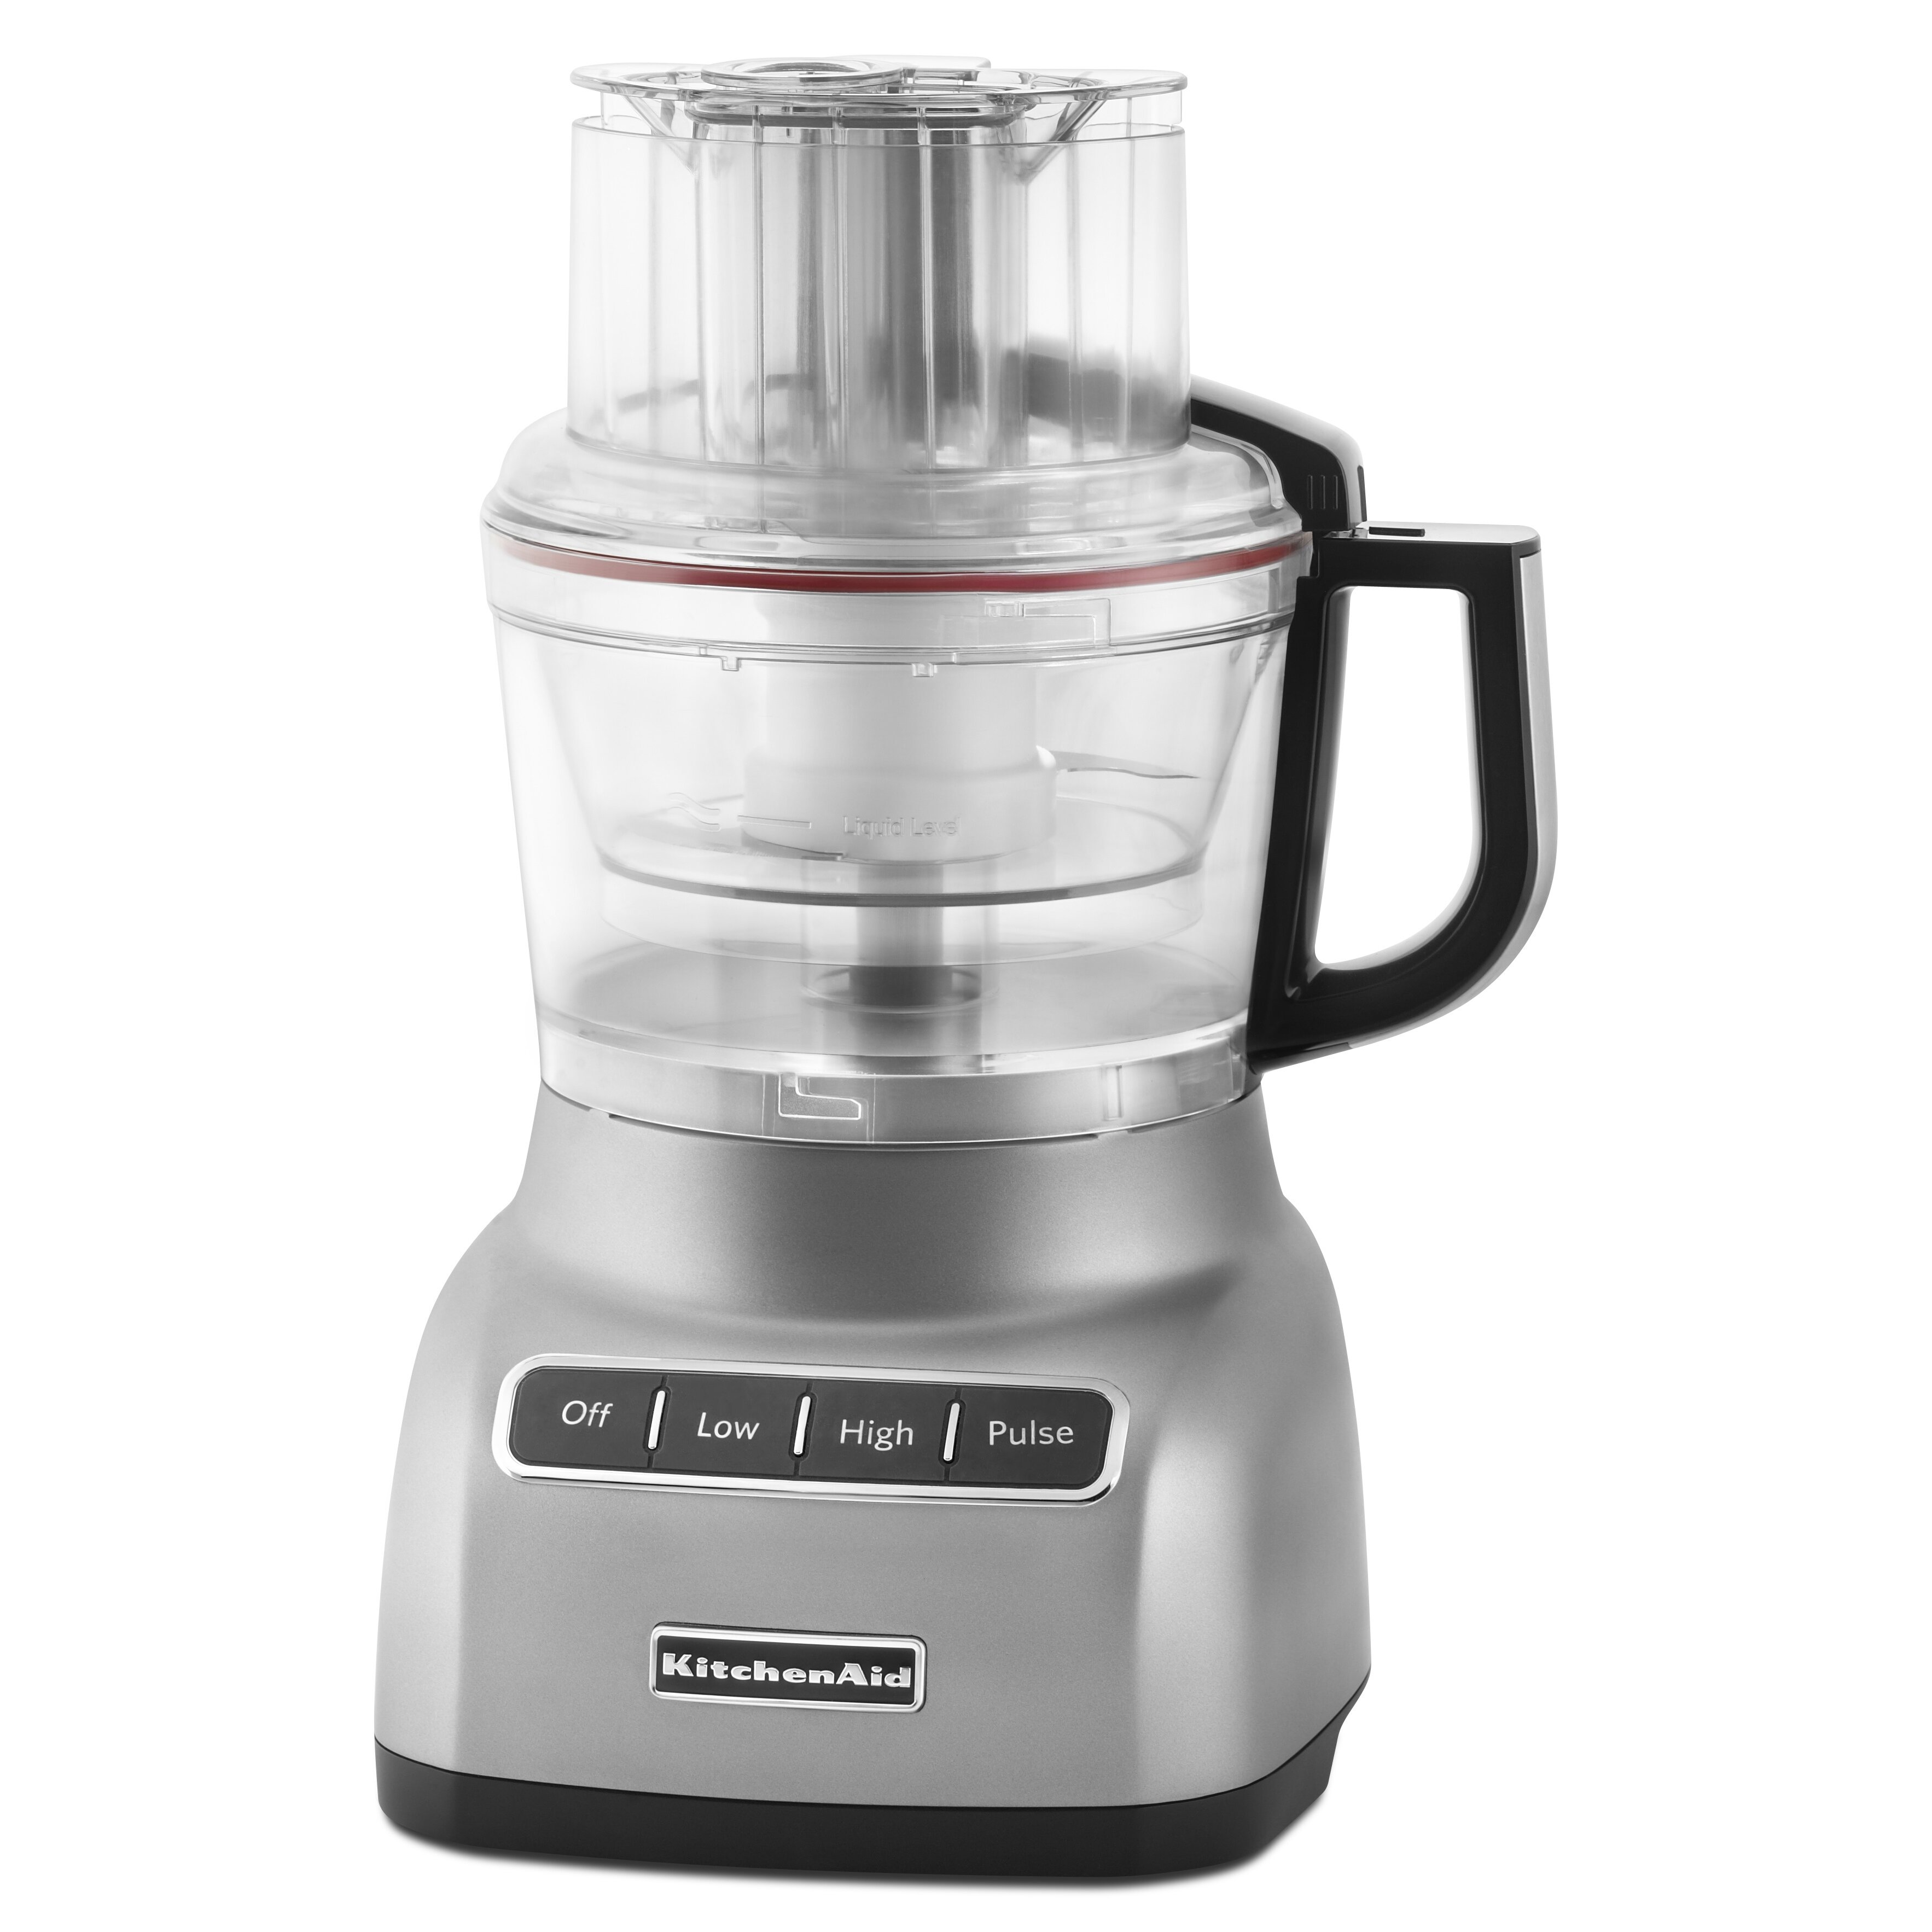 Kitchen Aid Appliances Reviews Kitchenaid 9 Cup Food Processor With Exactslice System Reviews